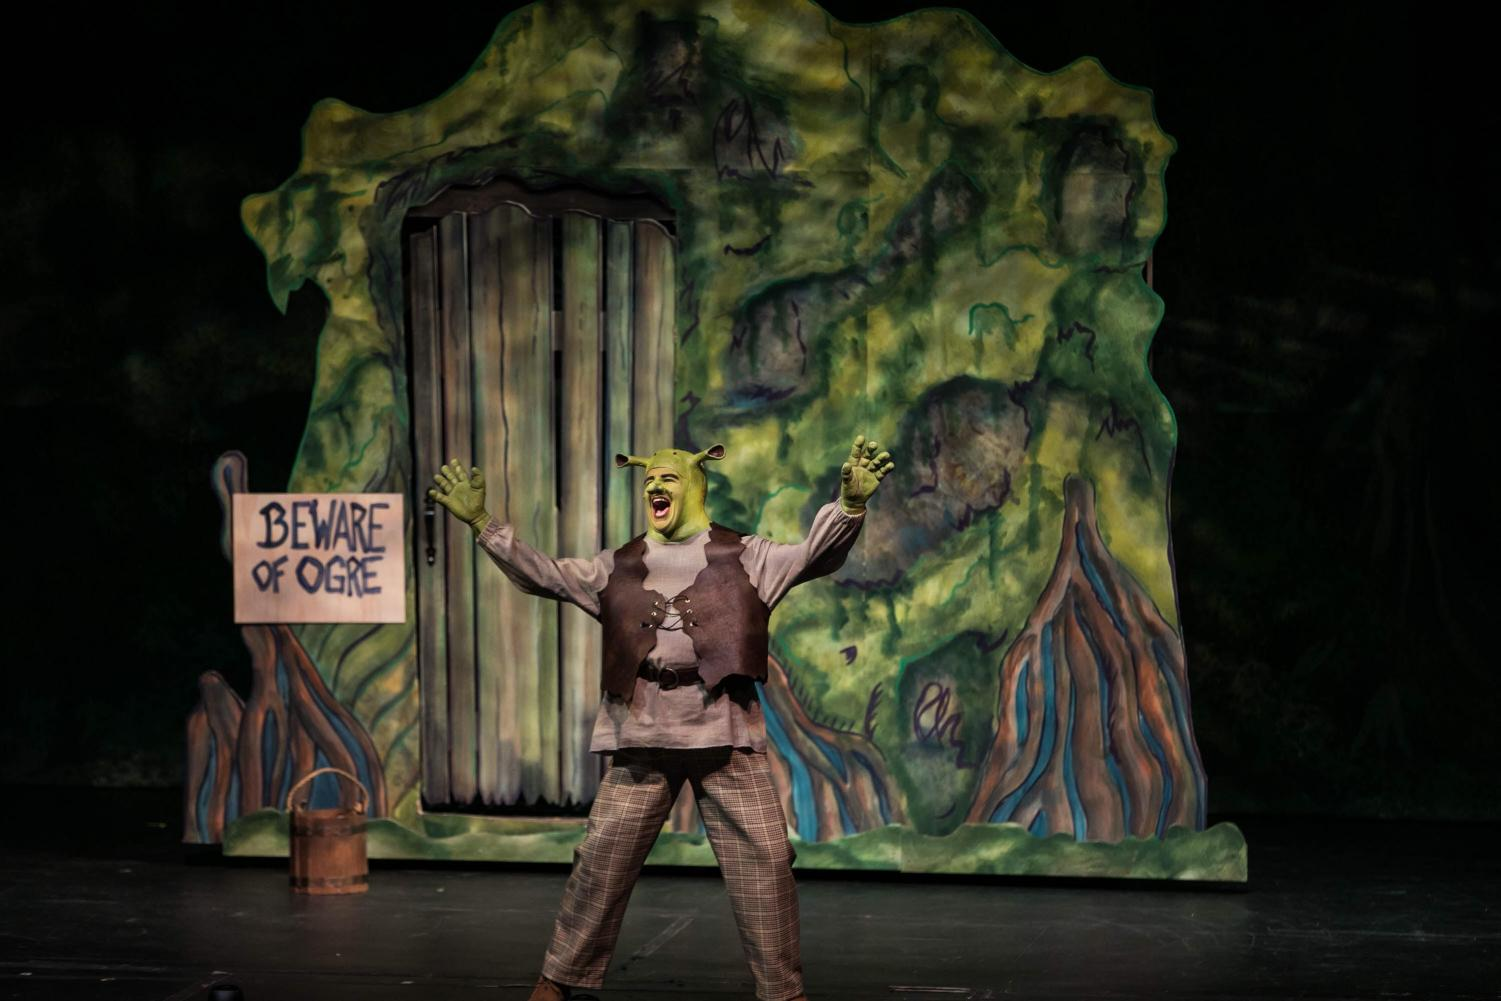 Newton in Shrek performing